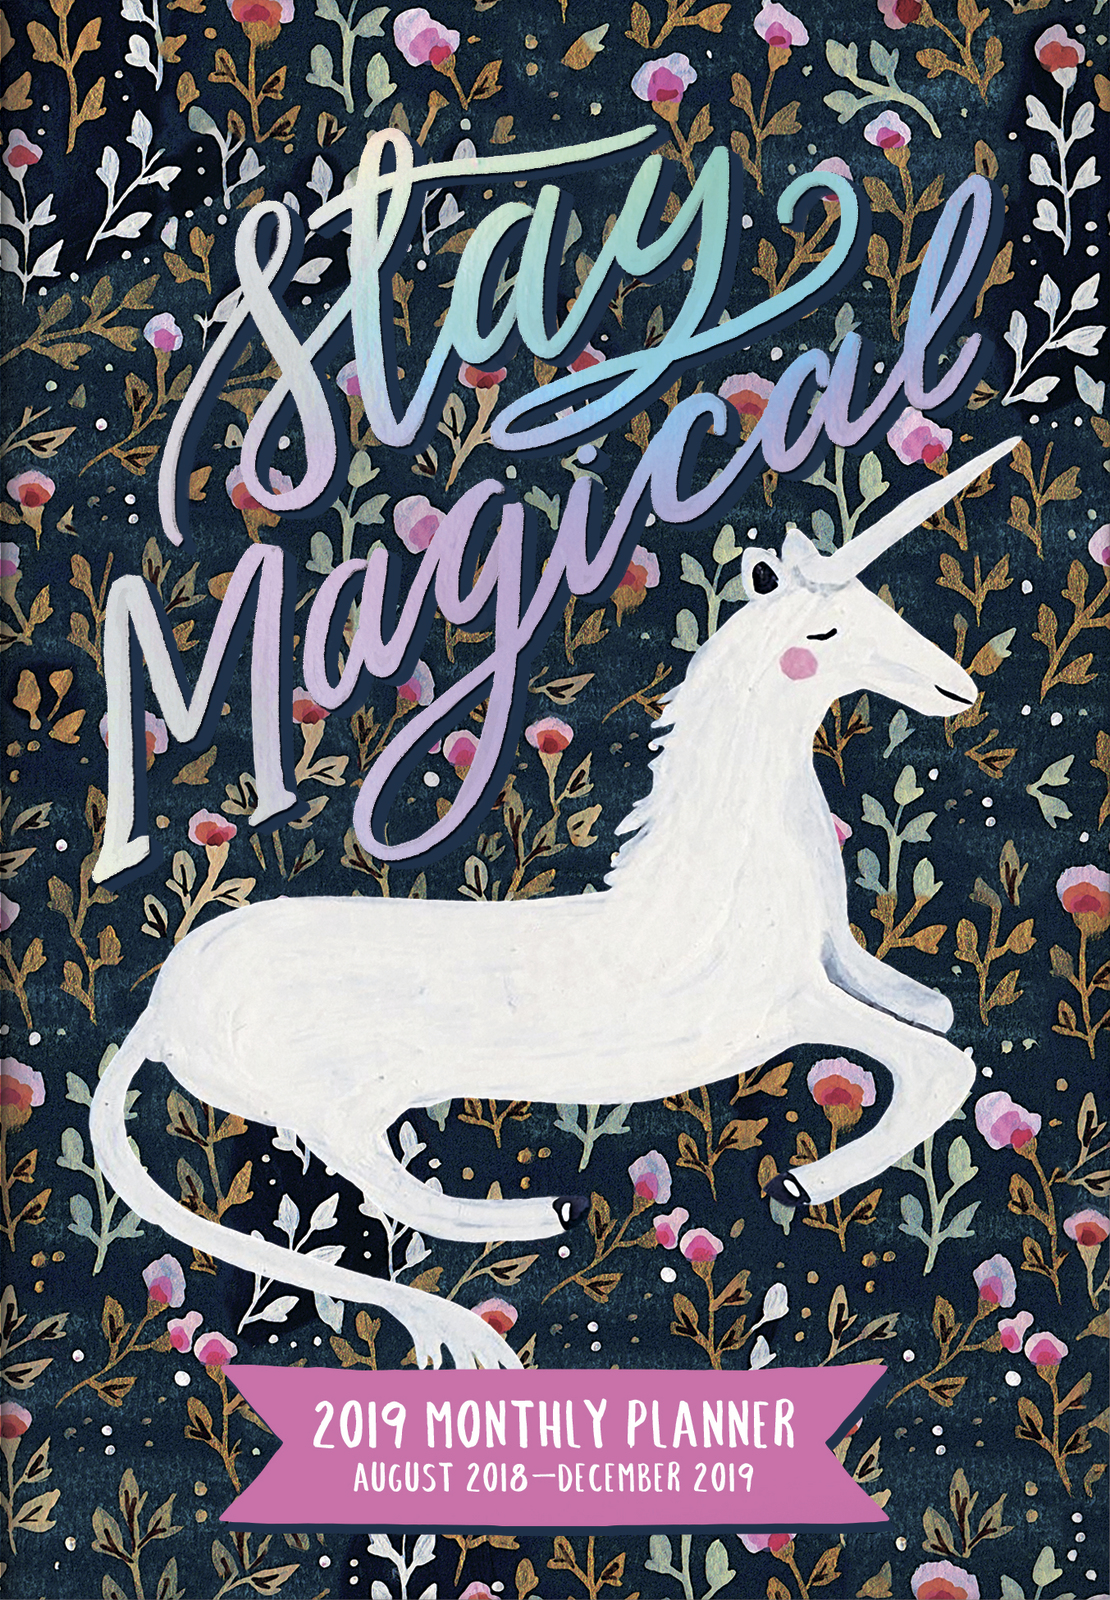 Magical 17 Month 2019 Pocket Diary image